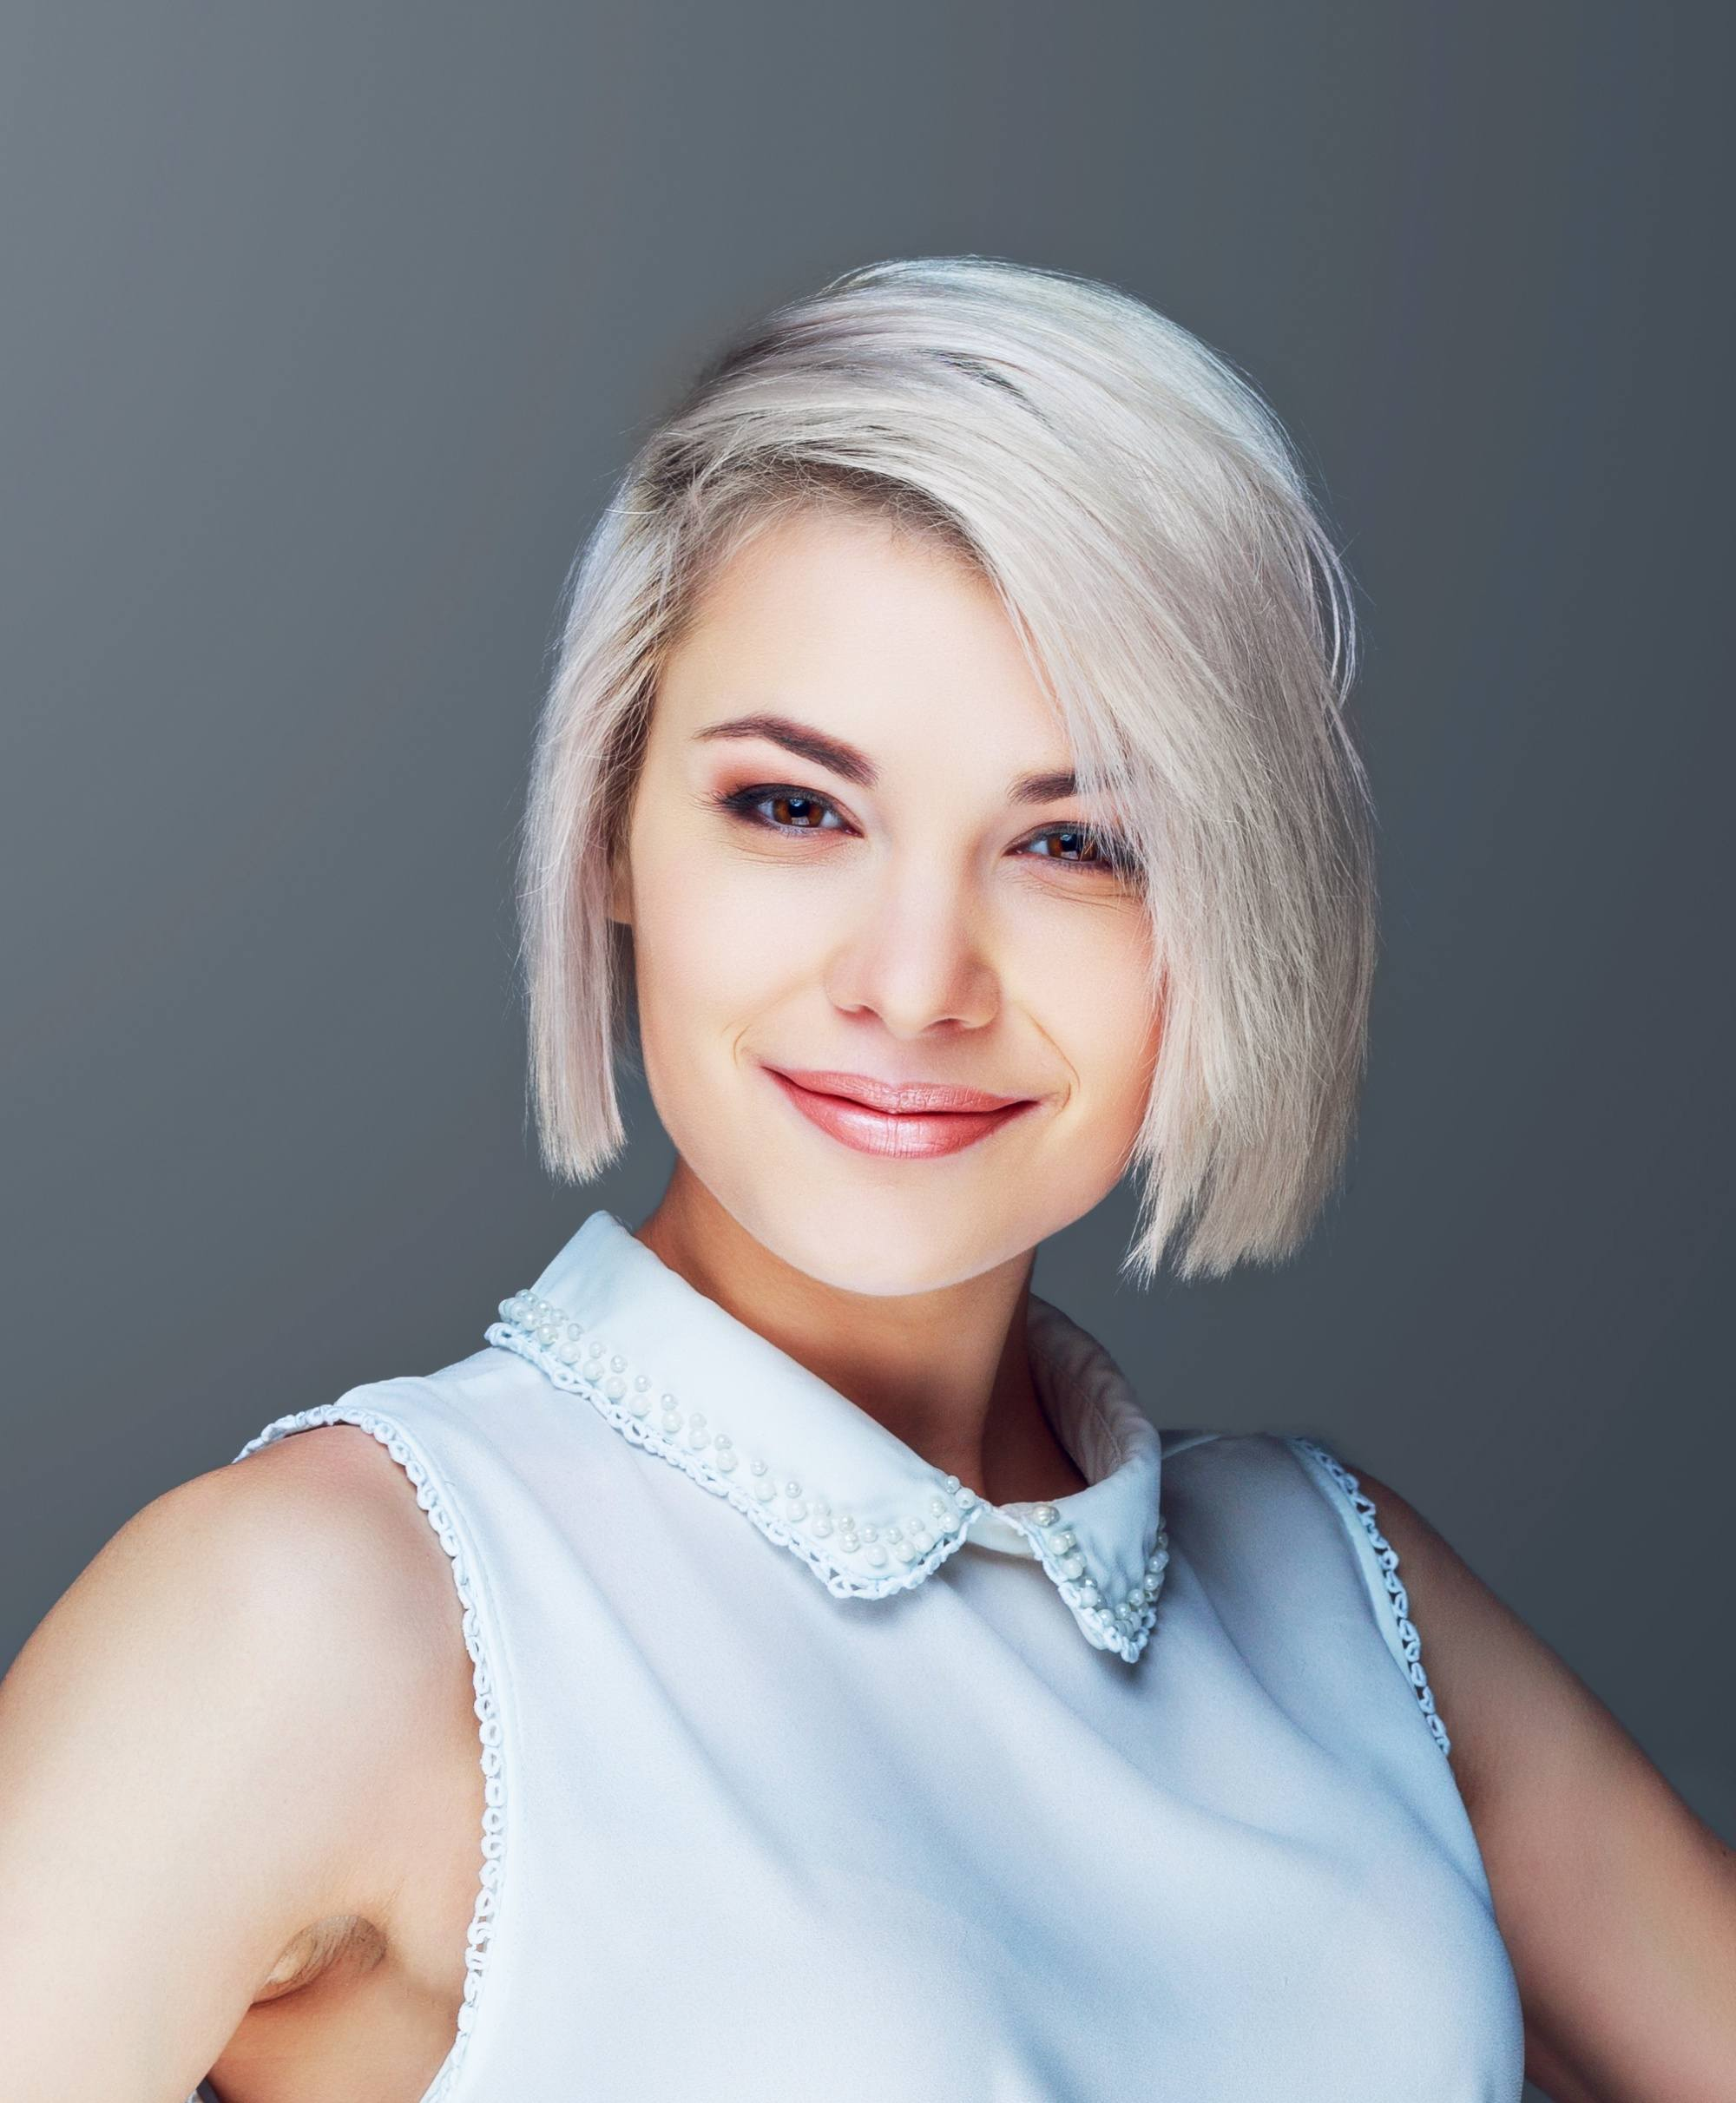 Bob haircuts for fine hair: Closeup shot of a Caucasian woman with short blonde hair smiling